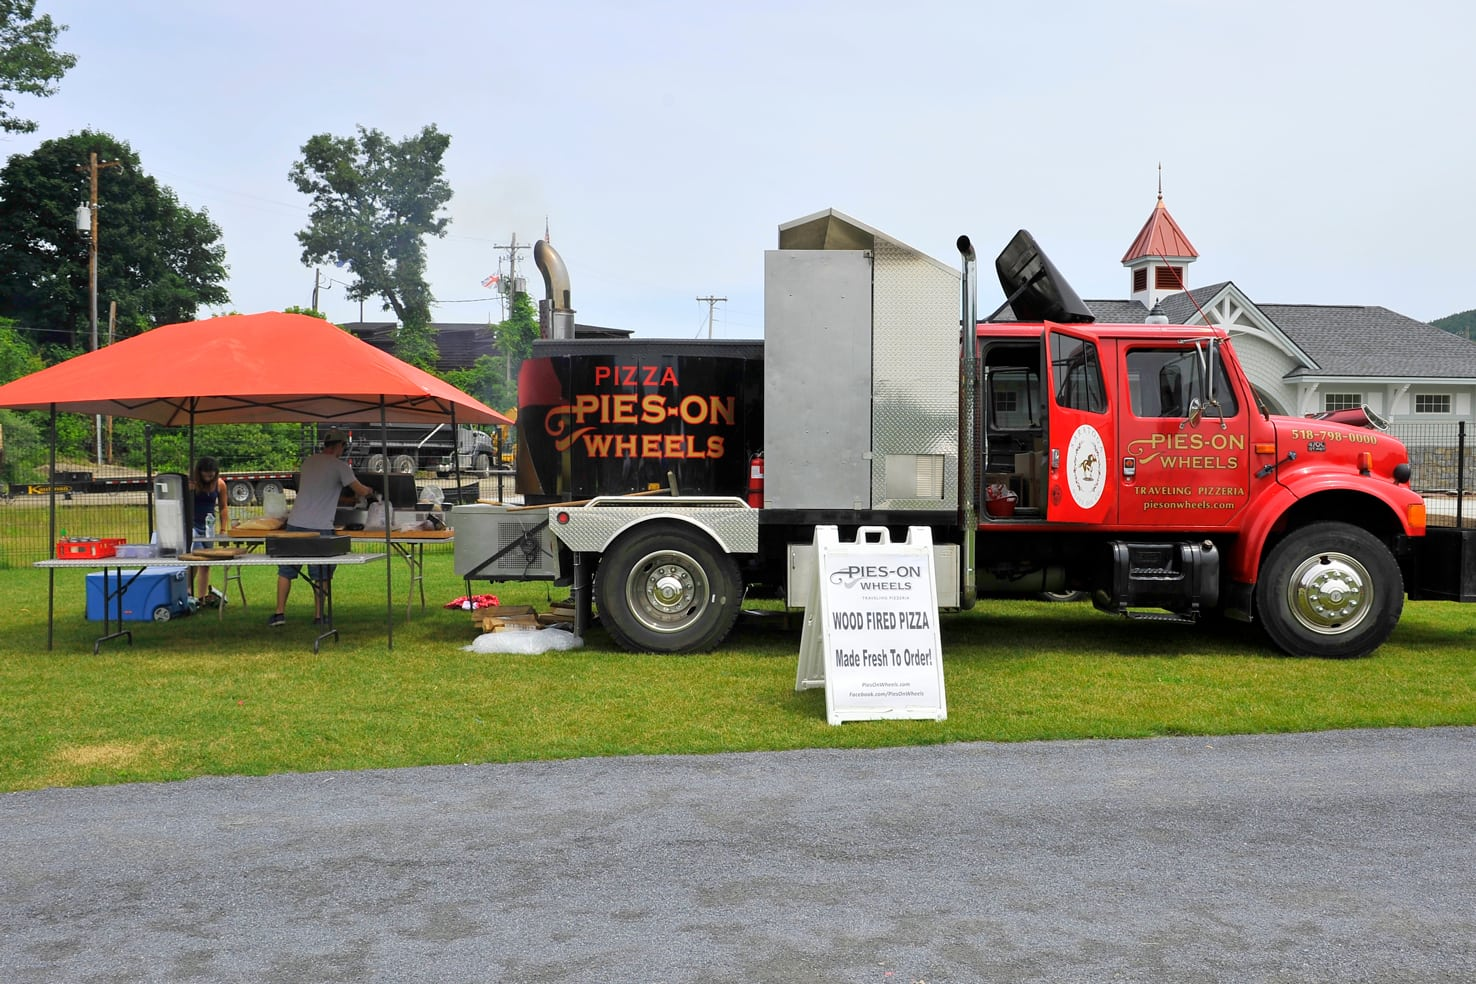 pies-on-wheels-truck-and-tent